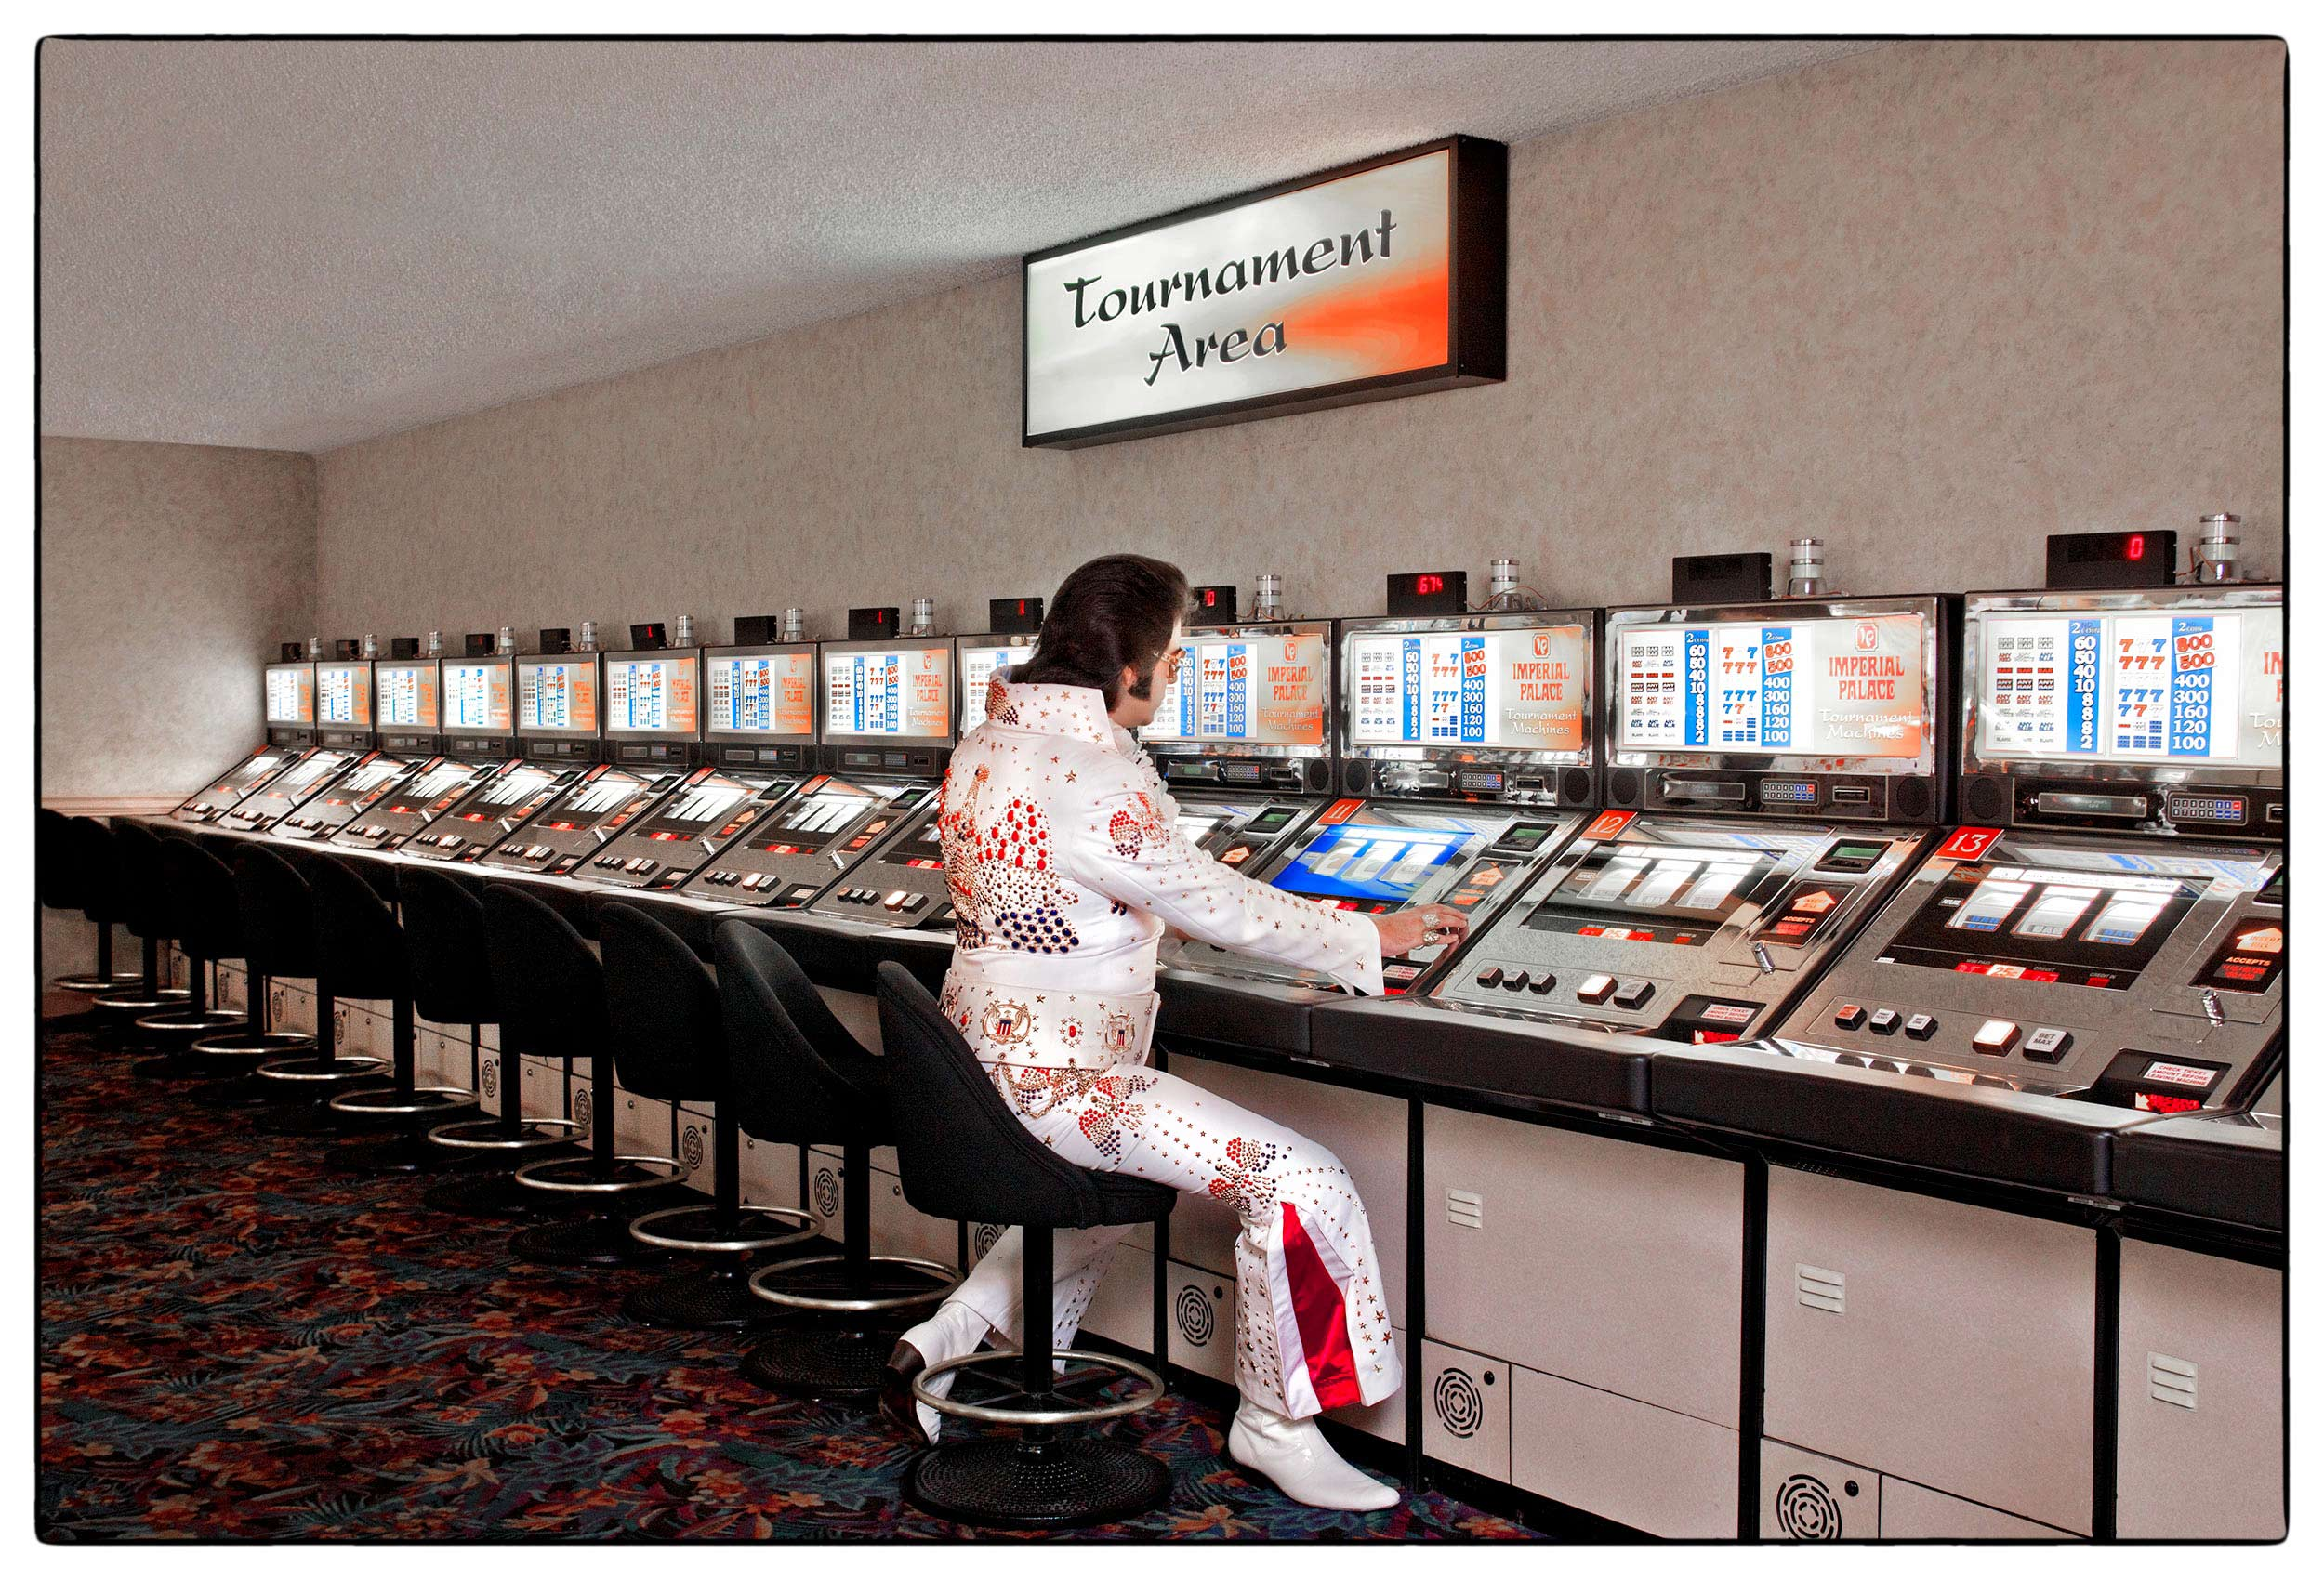 an-elvis-impersonator-plays-the-slot-machines-at-a-casino-in-las-vegas